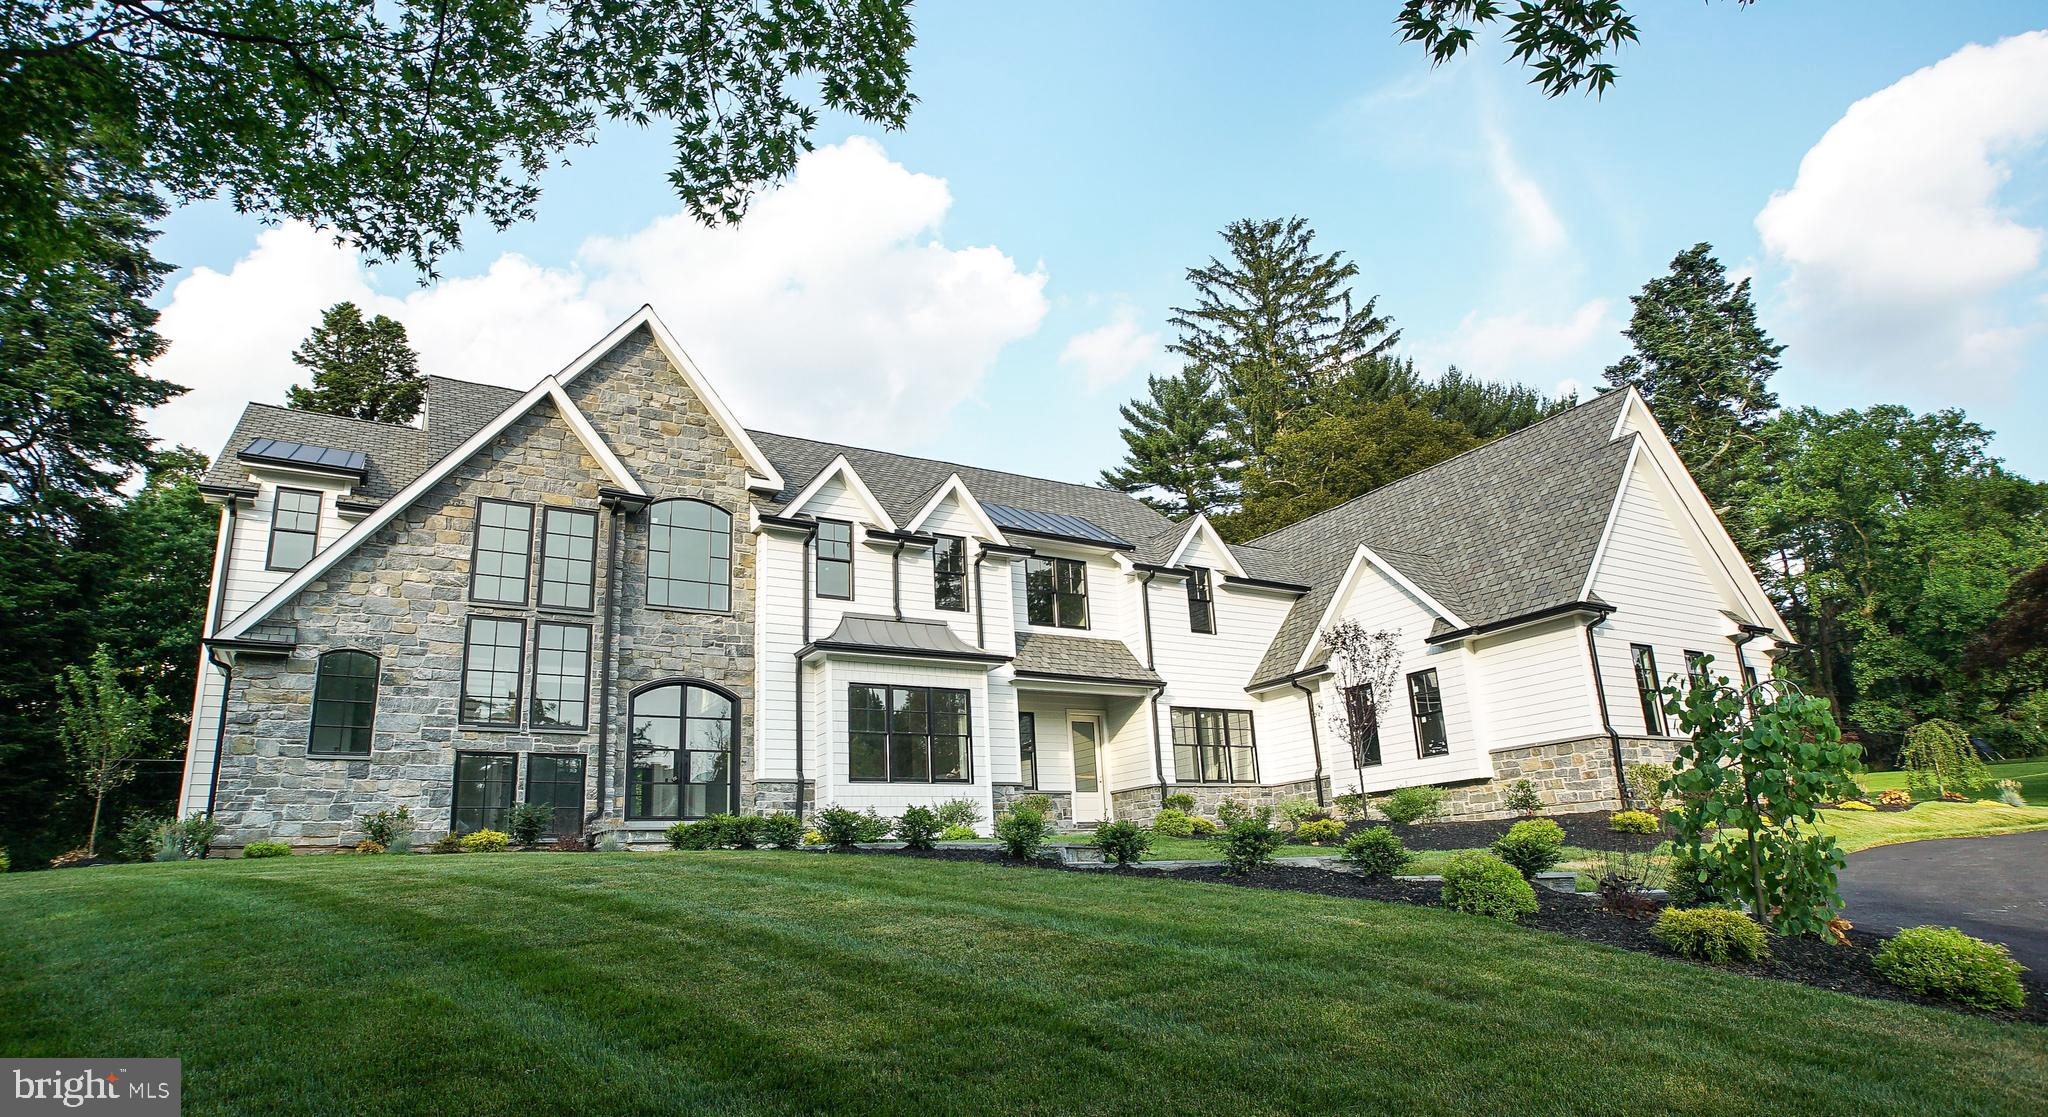 After multiple offers and 2 months under contract, the buyer's financing fell through and this beauty is back on the market.  Best Of the Main Line - Radnor Township New Construction.   Masterfully built on a gorgeous one acre lot with 9300 square feet of move-in ready finished space.  This home embodies luxury at every turn.  Massive foyer featuring a custom Iron Door, Quarter Sewn White Oak flooring  with a herringbone pattern, 10  ft ceilings, and a grand staircase with an impressive wall of windows. Sprawling open floor plan.  Enormous Chef's Kitchen with Thermador appliances, Custom Craft Maid Kitchen Cabinets and impeccable Cambria Quartz countertops with Artistic tile backsplash.   Built for entertaining, the adjacent butler's kitchen features it's own double oven and dishwasher with effortless flow into the dining room.  All bedroom have en suite baths and the Master features an attached Nursery/Office /Closet that can be reverted to the 5th bedroom very easily.  The fully finished basement adds 2500 square feet of living space and features a Large gym w/ full bath and steam shower as well as a separate theatre room   Oversized 3 car garage equipped  to handle lifts for the  car enthusiast.  The backyard has a gorgeous covered slate patio and is engineered for a future pool and pool house, as well as additional hardscaping.  Located on a sought after street and close to all of the amazing dining and shopping the Main Line has to offer!  Now is your chance to own this magnificent home.